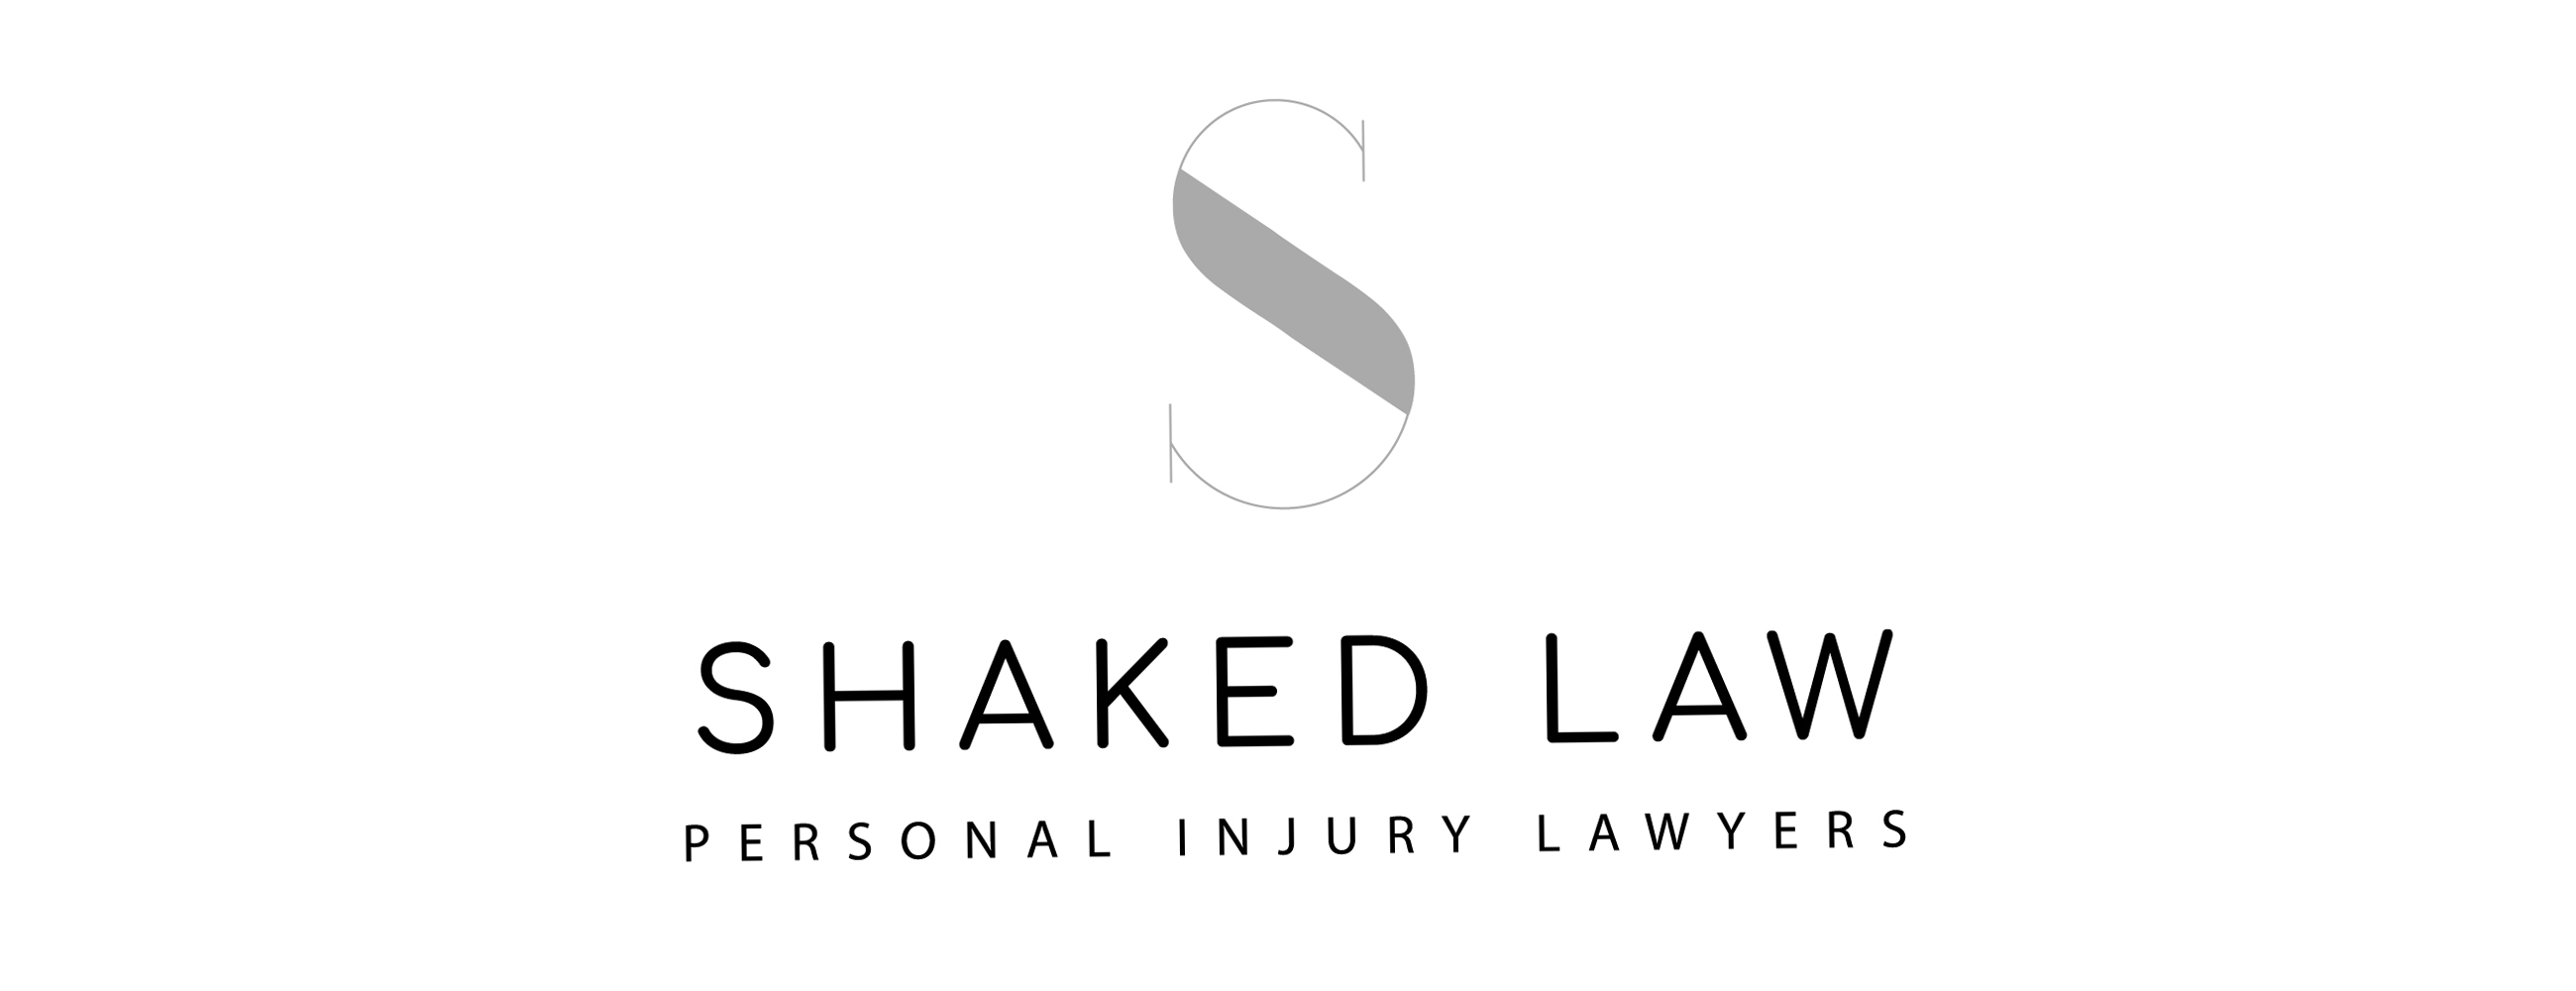 Shaked Law Firm P.A reviews | Personal Injury Law at 20900 NE 30 Ave - Aventura FL